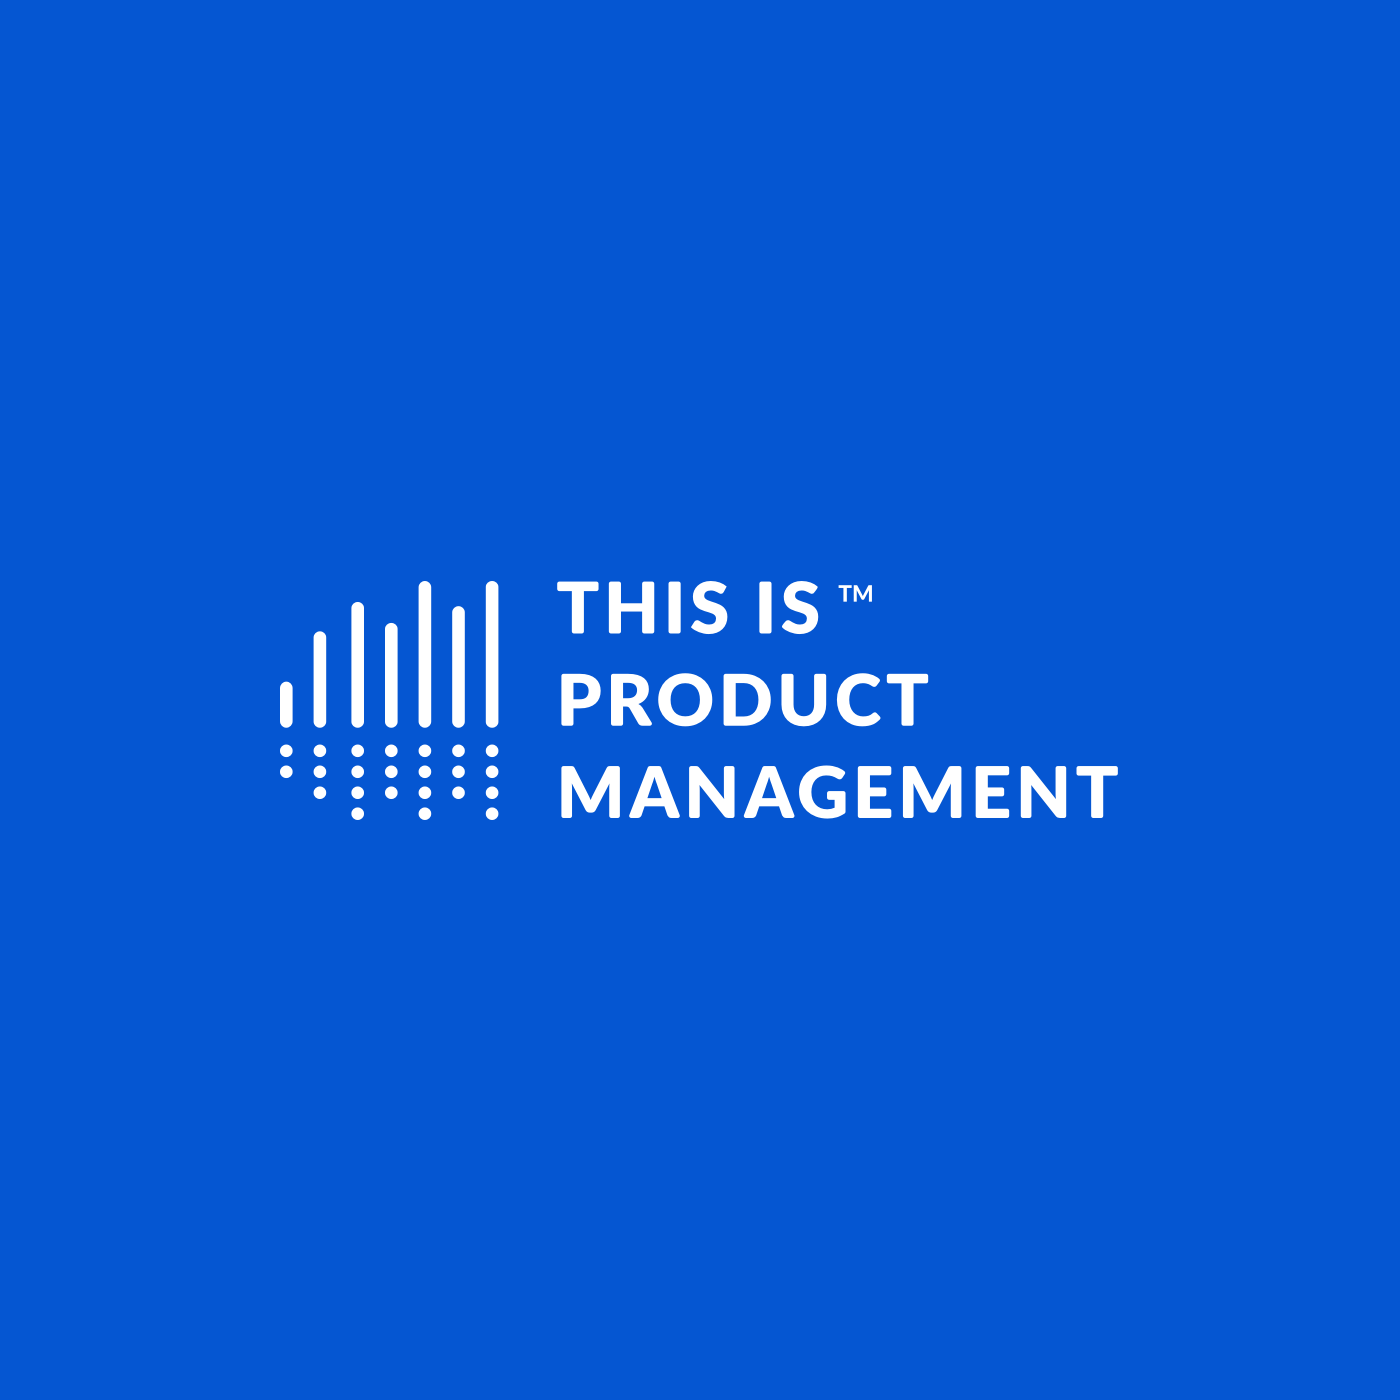 thisisproductmanagement-logo